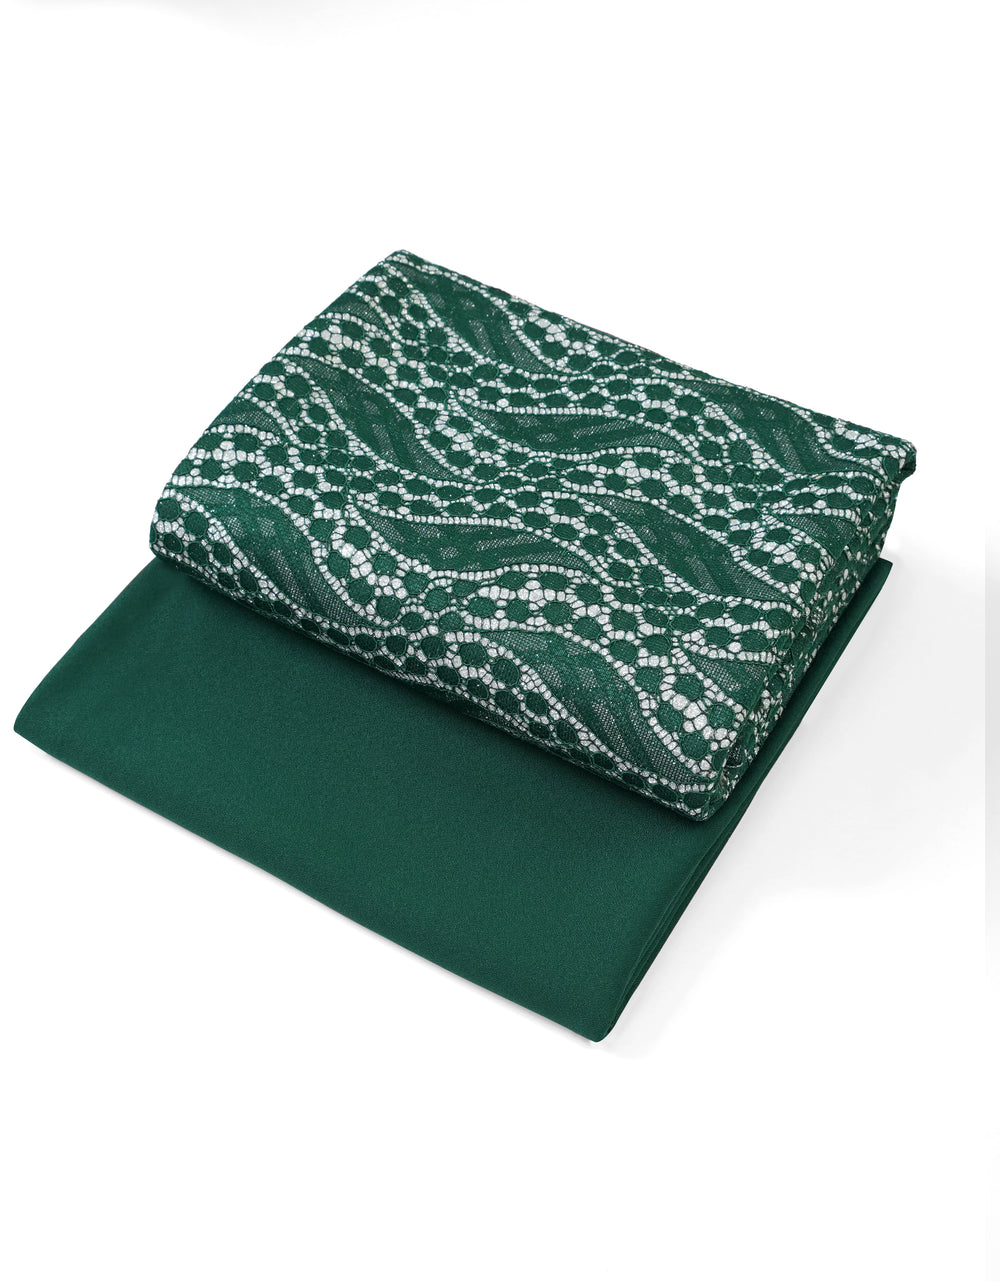 Glitter Bonding Lace Emerald Green + Umo Crepe Gable Green (Abstract Wavy)